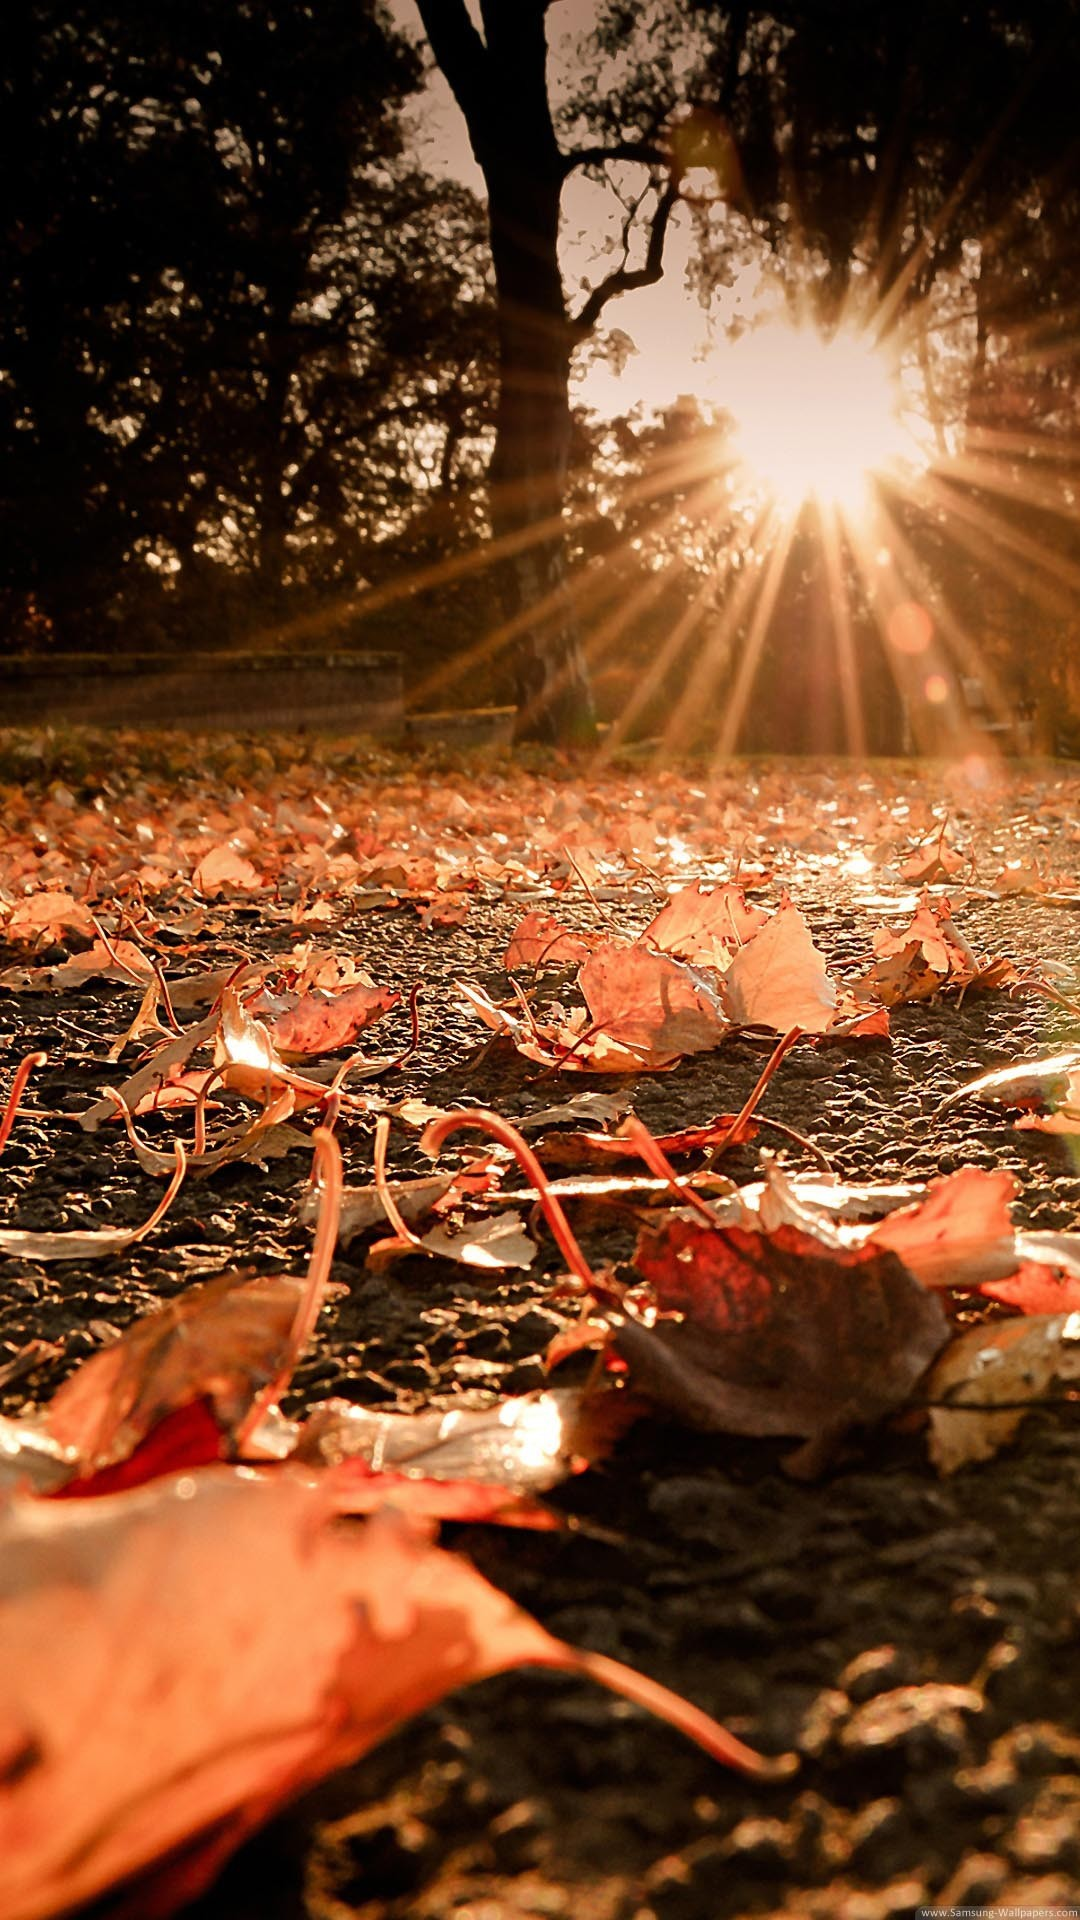 Screensavers And Wallpaper Autumn Scene 53 Images